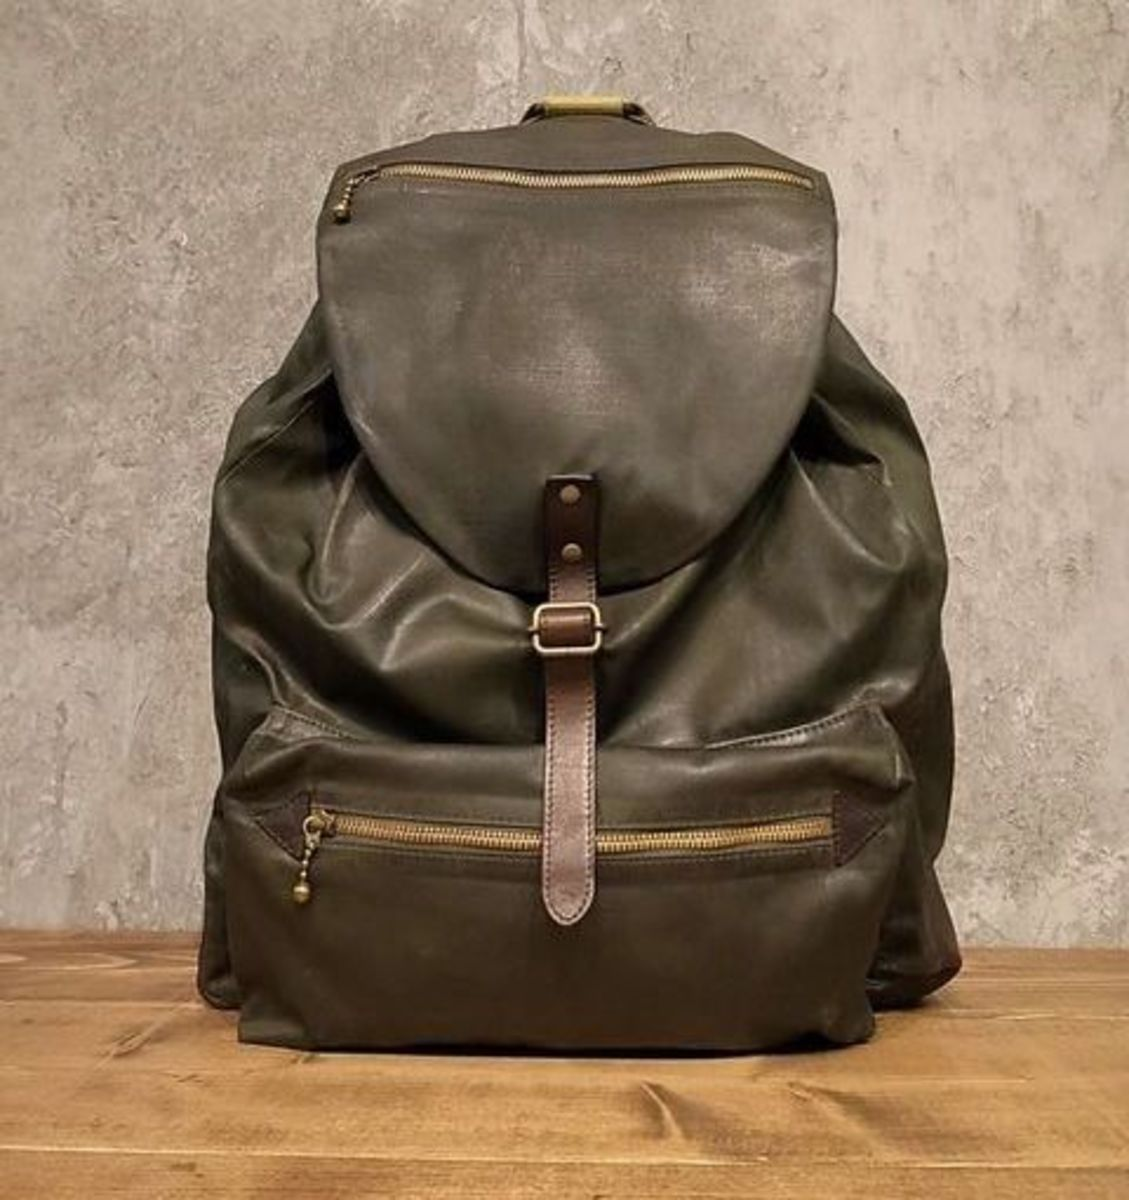 Addict Clothes Japan Vintage-style Backpack